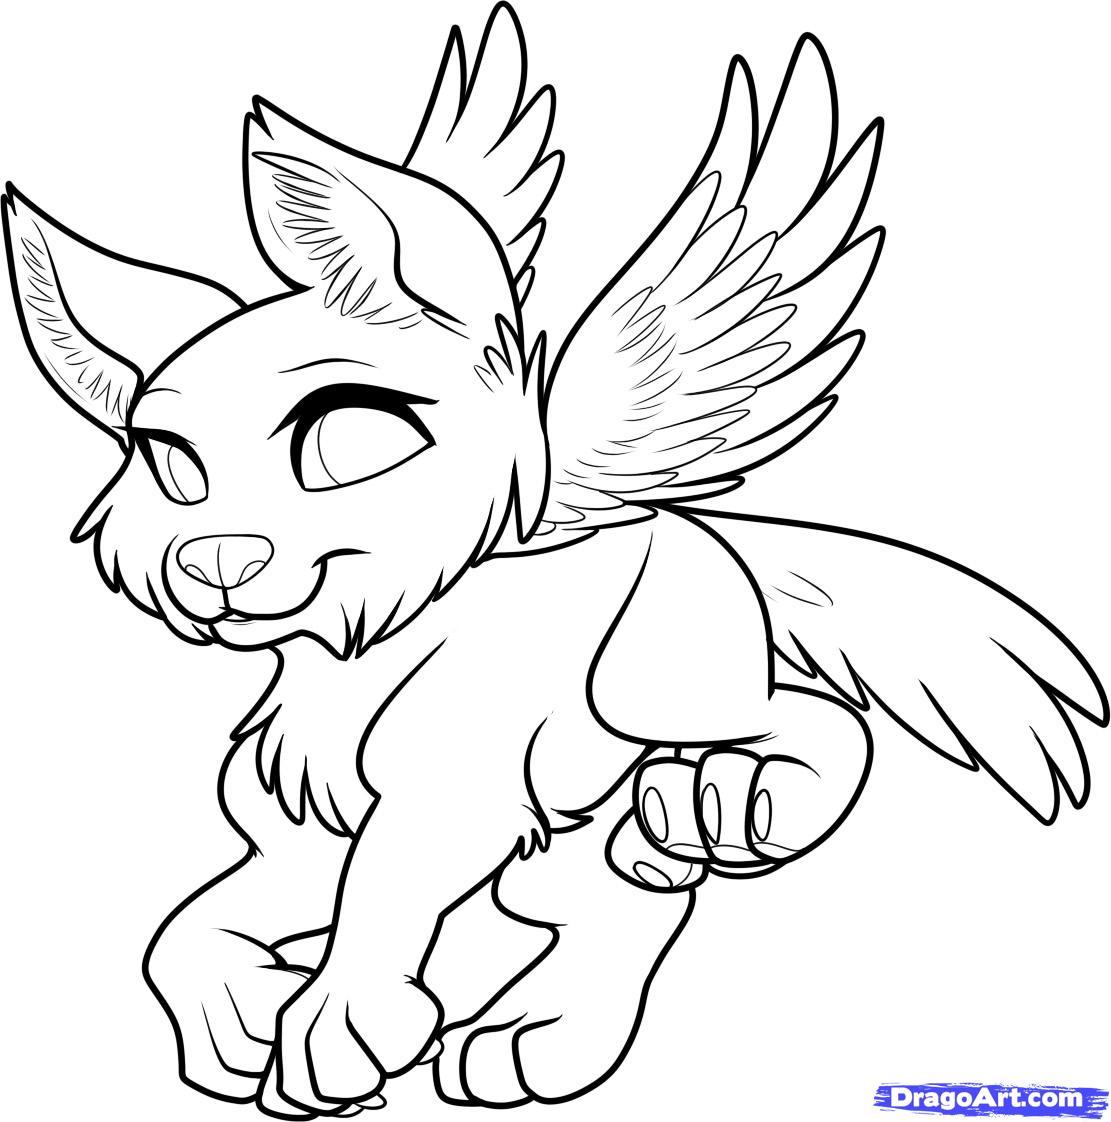 1111x1122 How To Draw A Flying Wolf Flying Wolf Step 11 1 000000067057 5.jpg